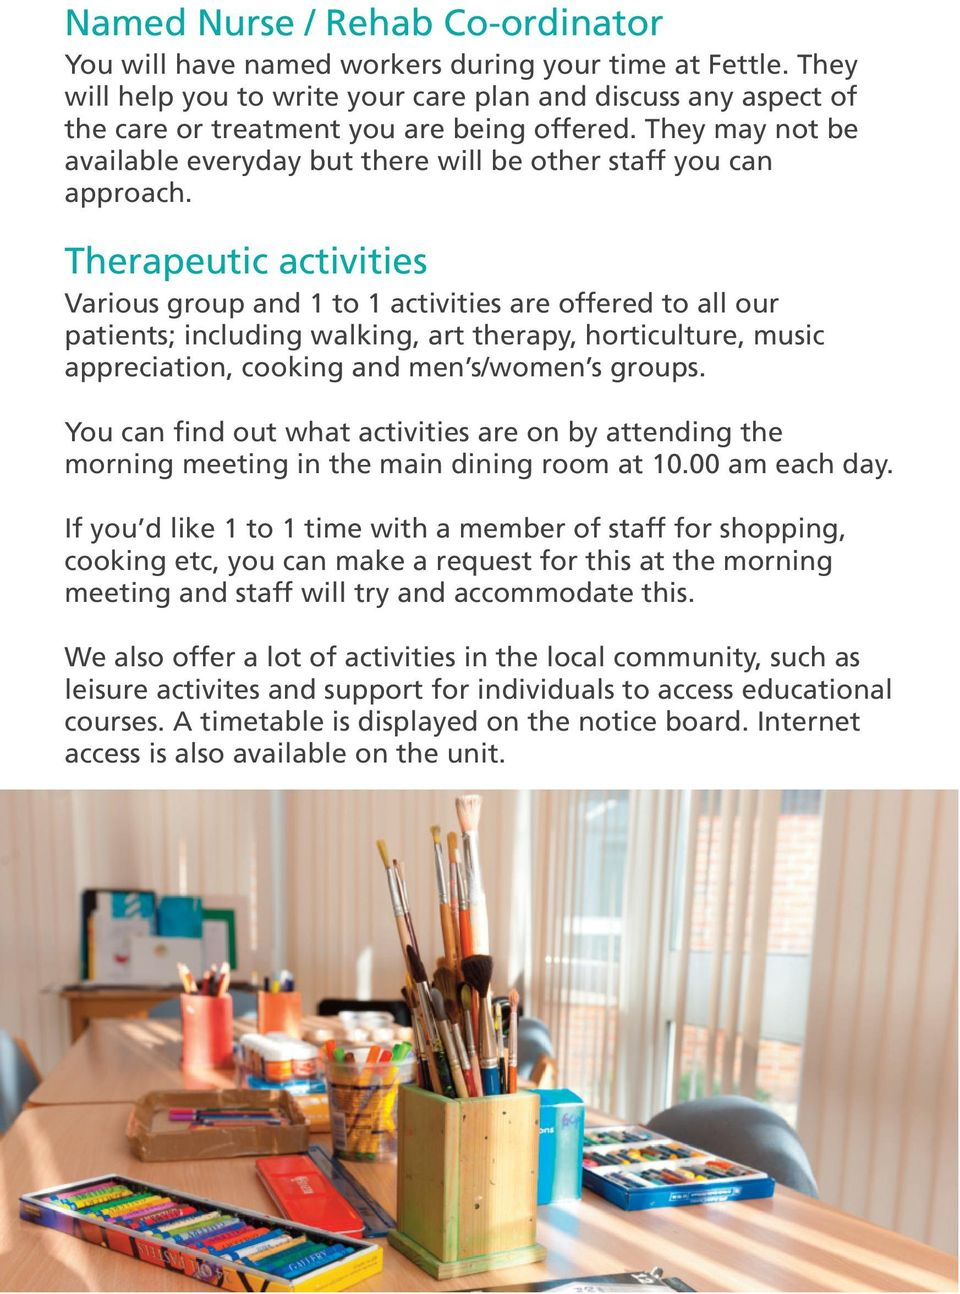 Therapeutic activities Various group and 1 to 1 activities are offered to all our patients; including walking, art therapy, horticulture, music appreciation, cooking and men s/women s groups.